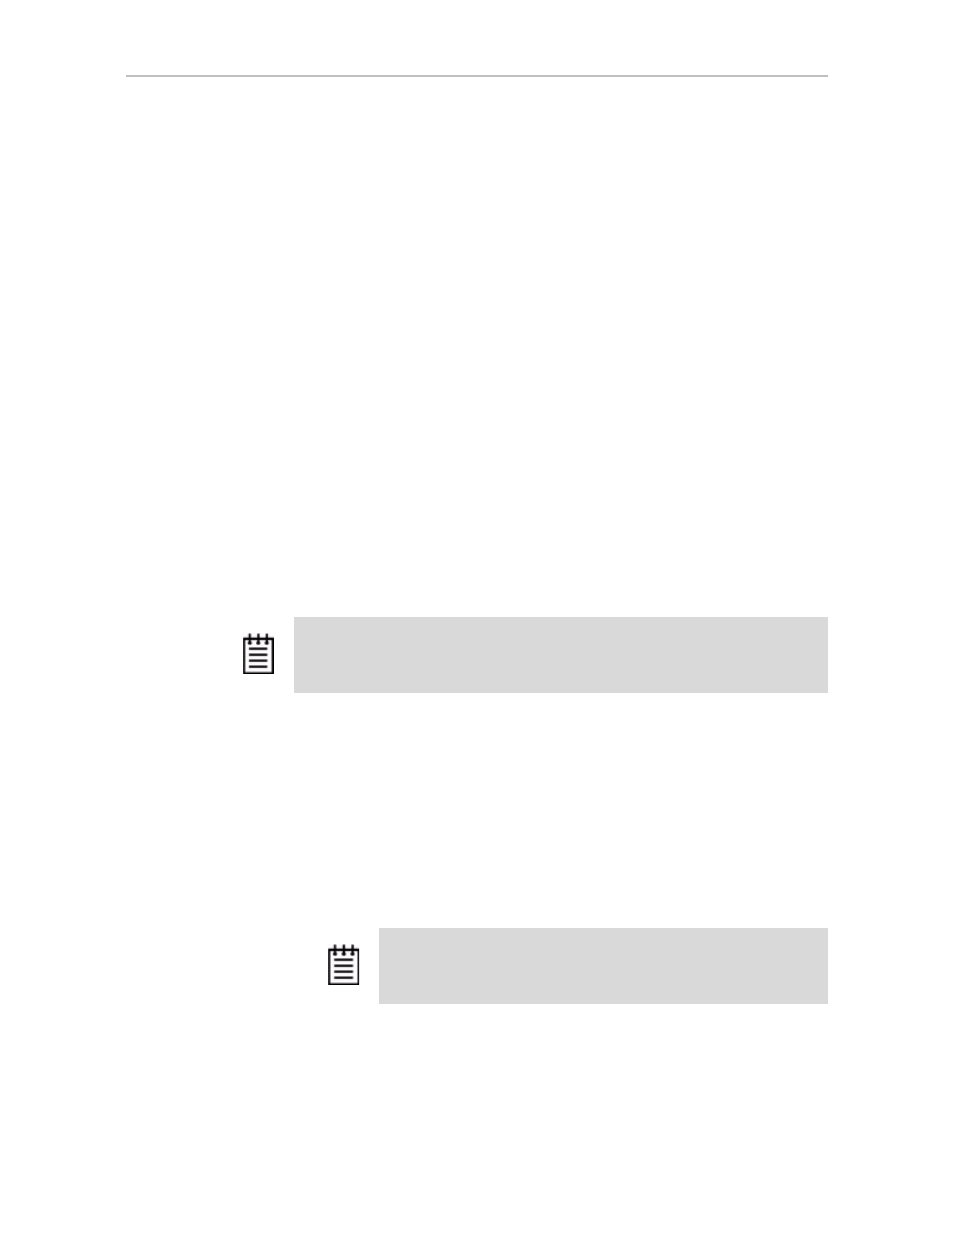 Downloading the driver and firmware | Avago Technologies